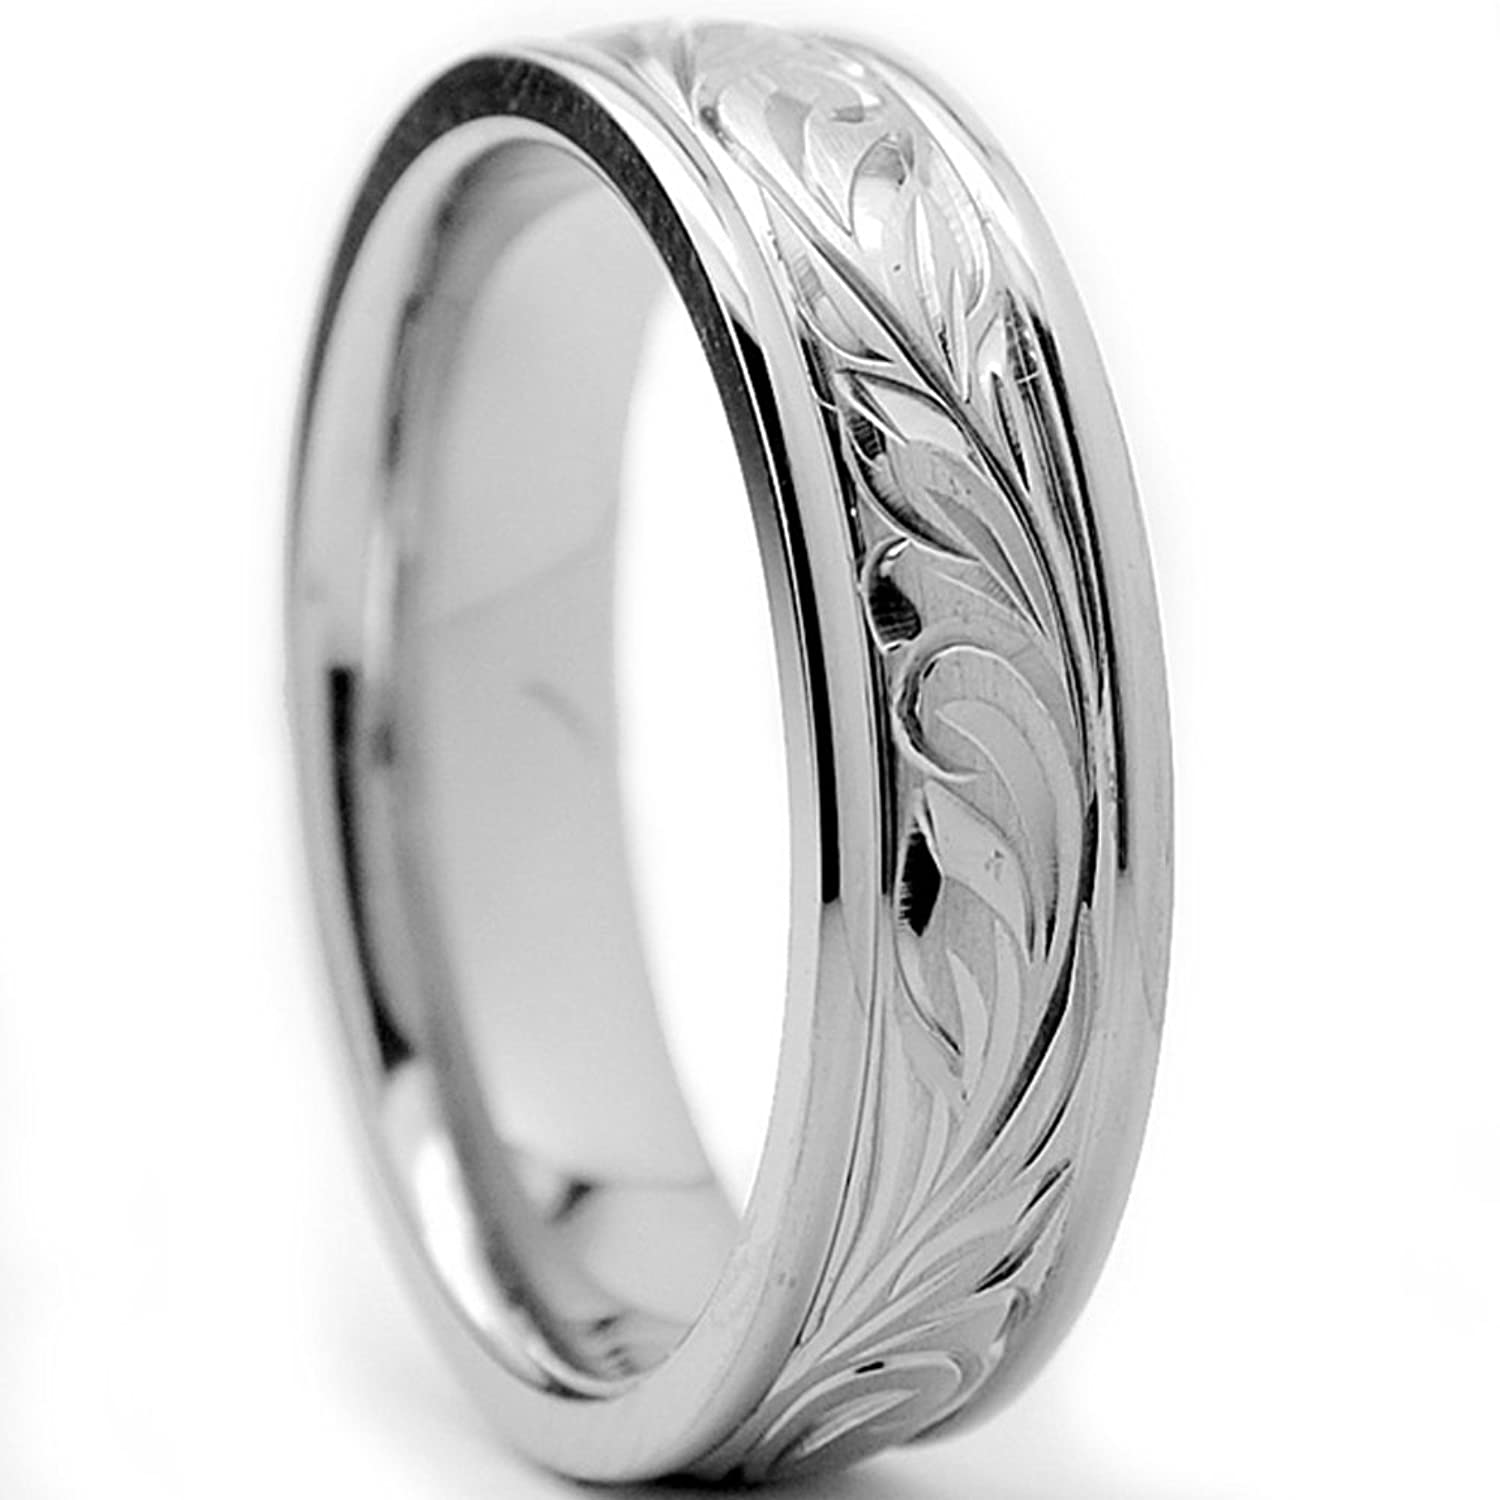 Amazon 6MM Titanium Ring Wedding Band With Engraved Floral